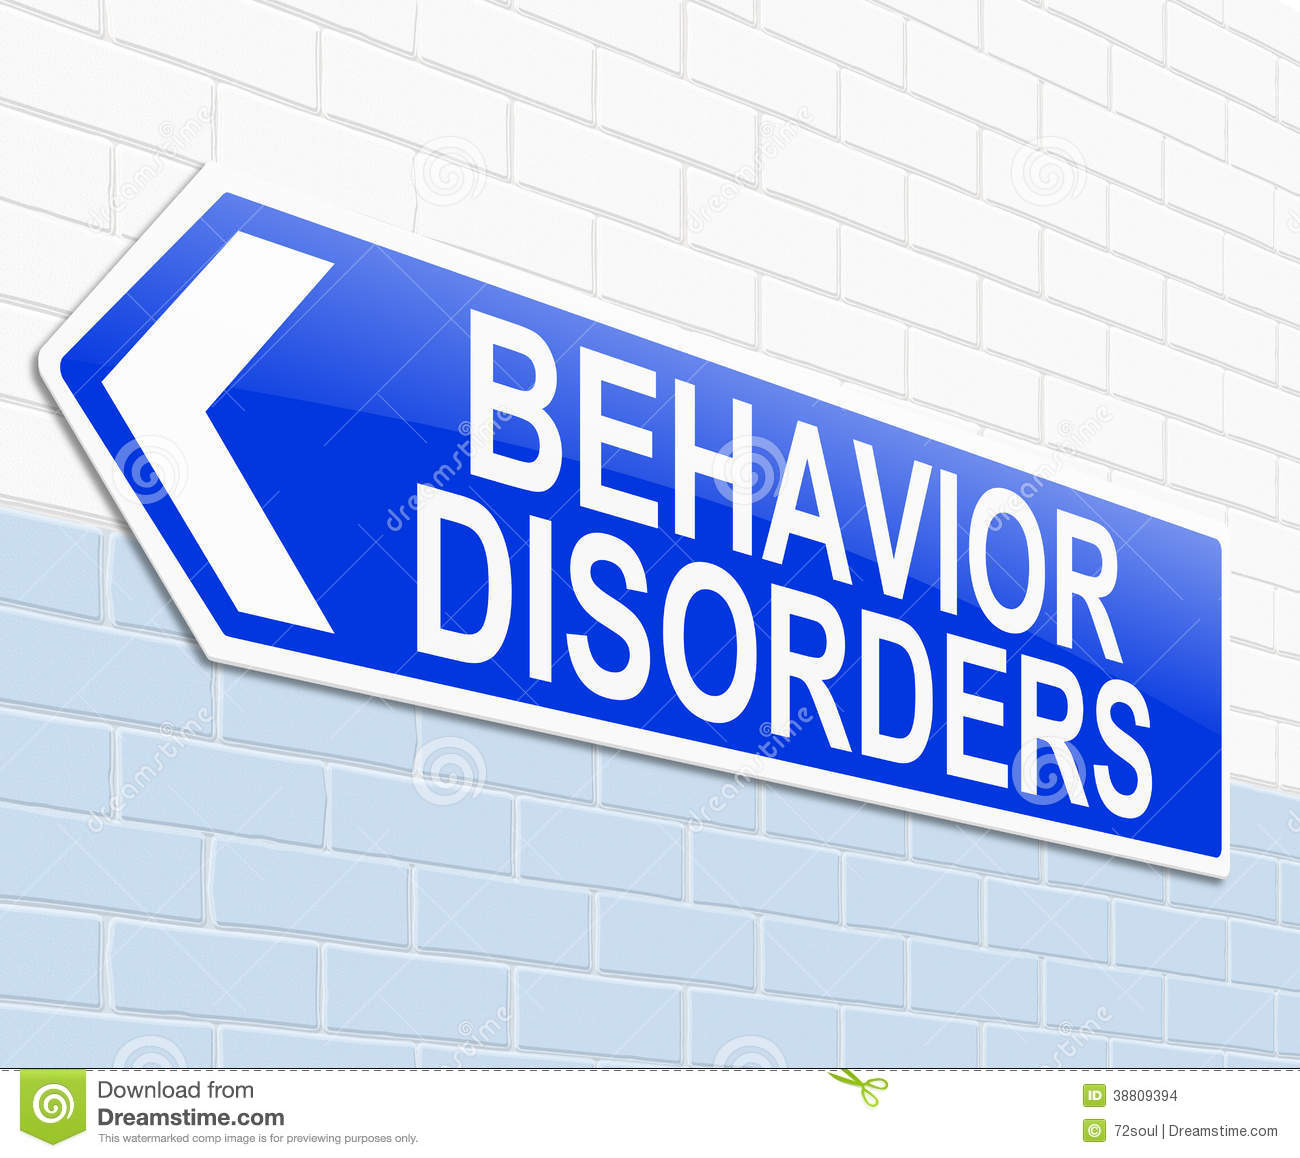 behavior disorders Learn more about the signs, symptoms and effects of disruptive behavior disorder from the experts at valley behavioral health system.